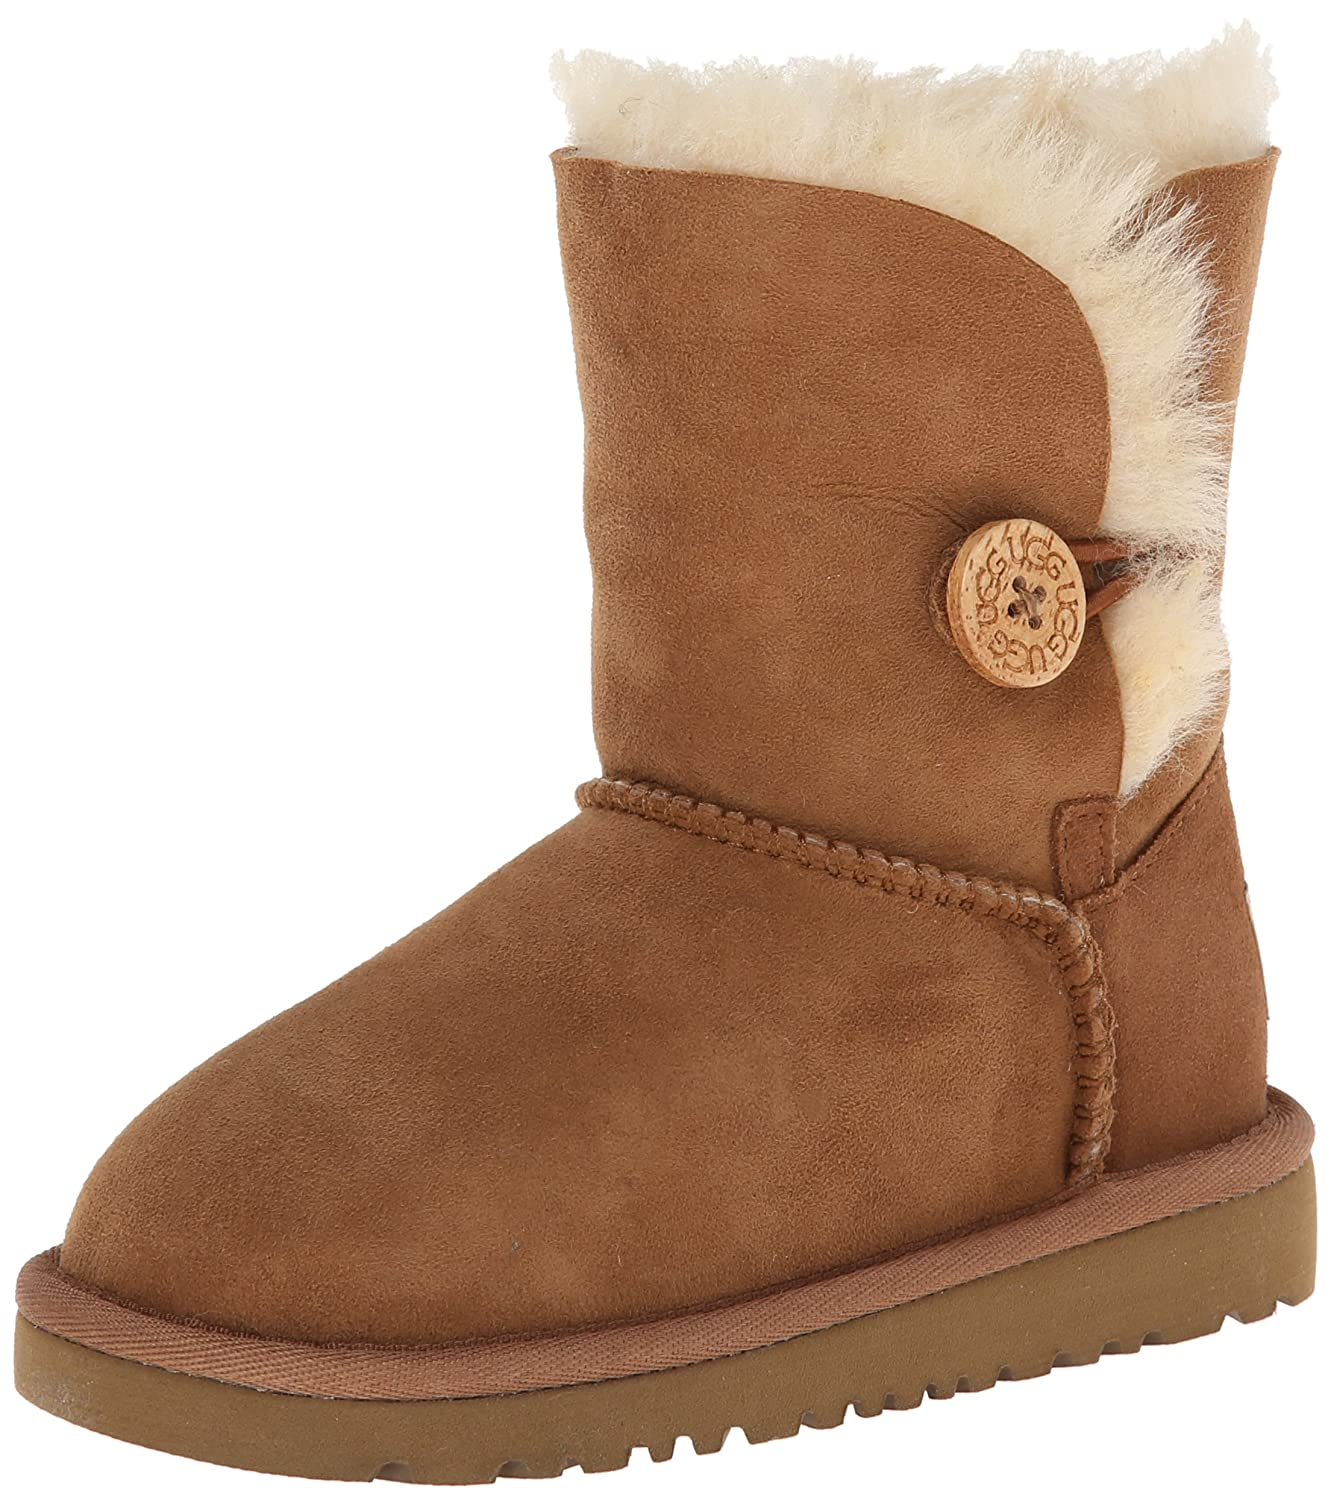 Ugg Bailey Button Boots Toddlers угги светло коричневые bailey button ugg ут 00004042